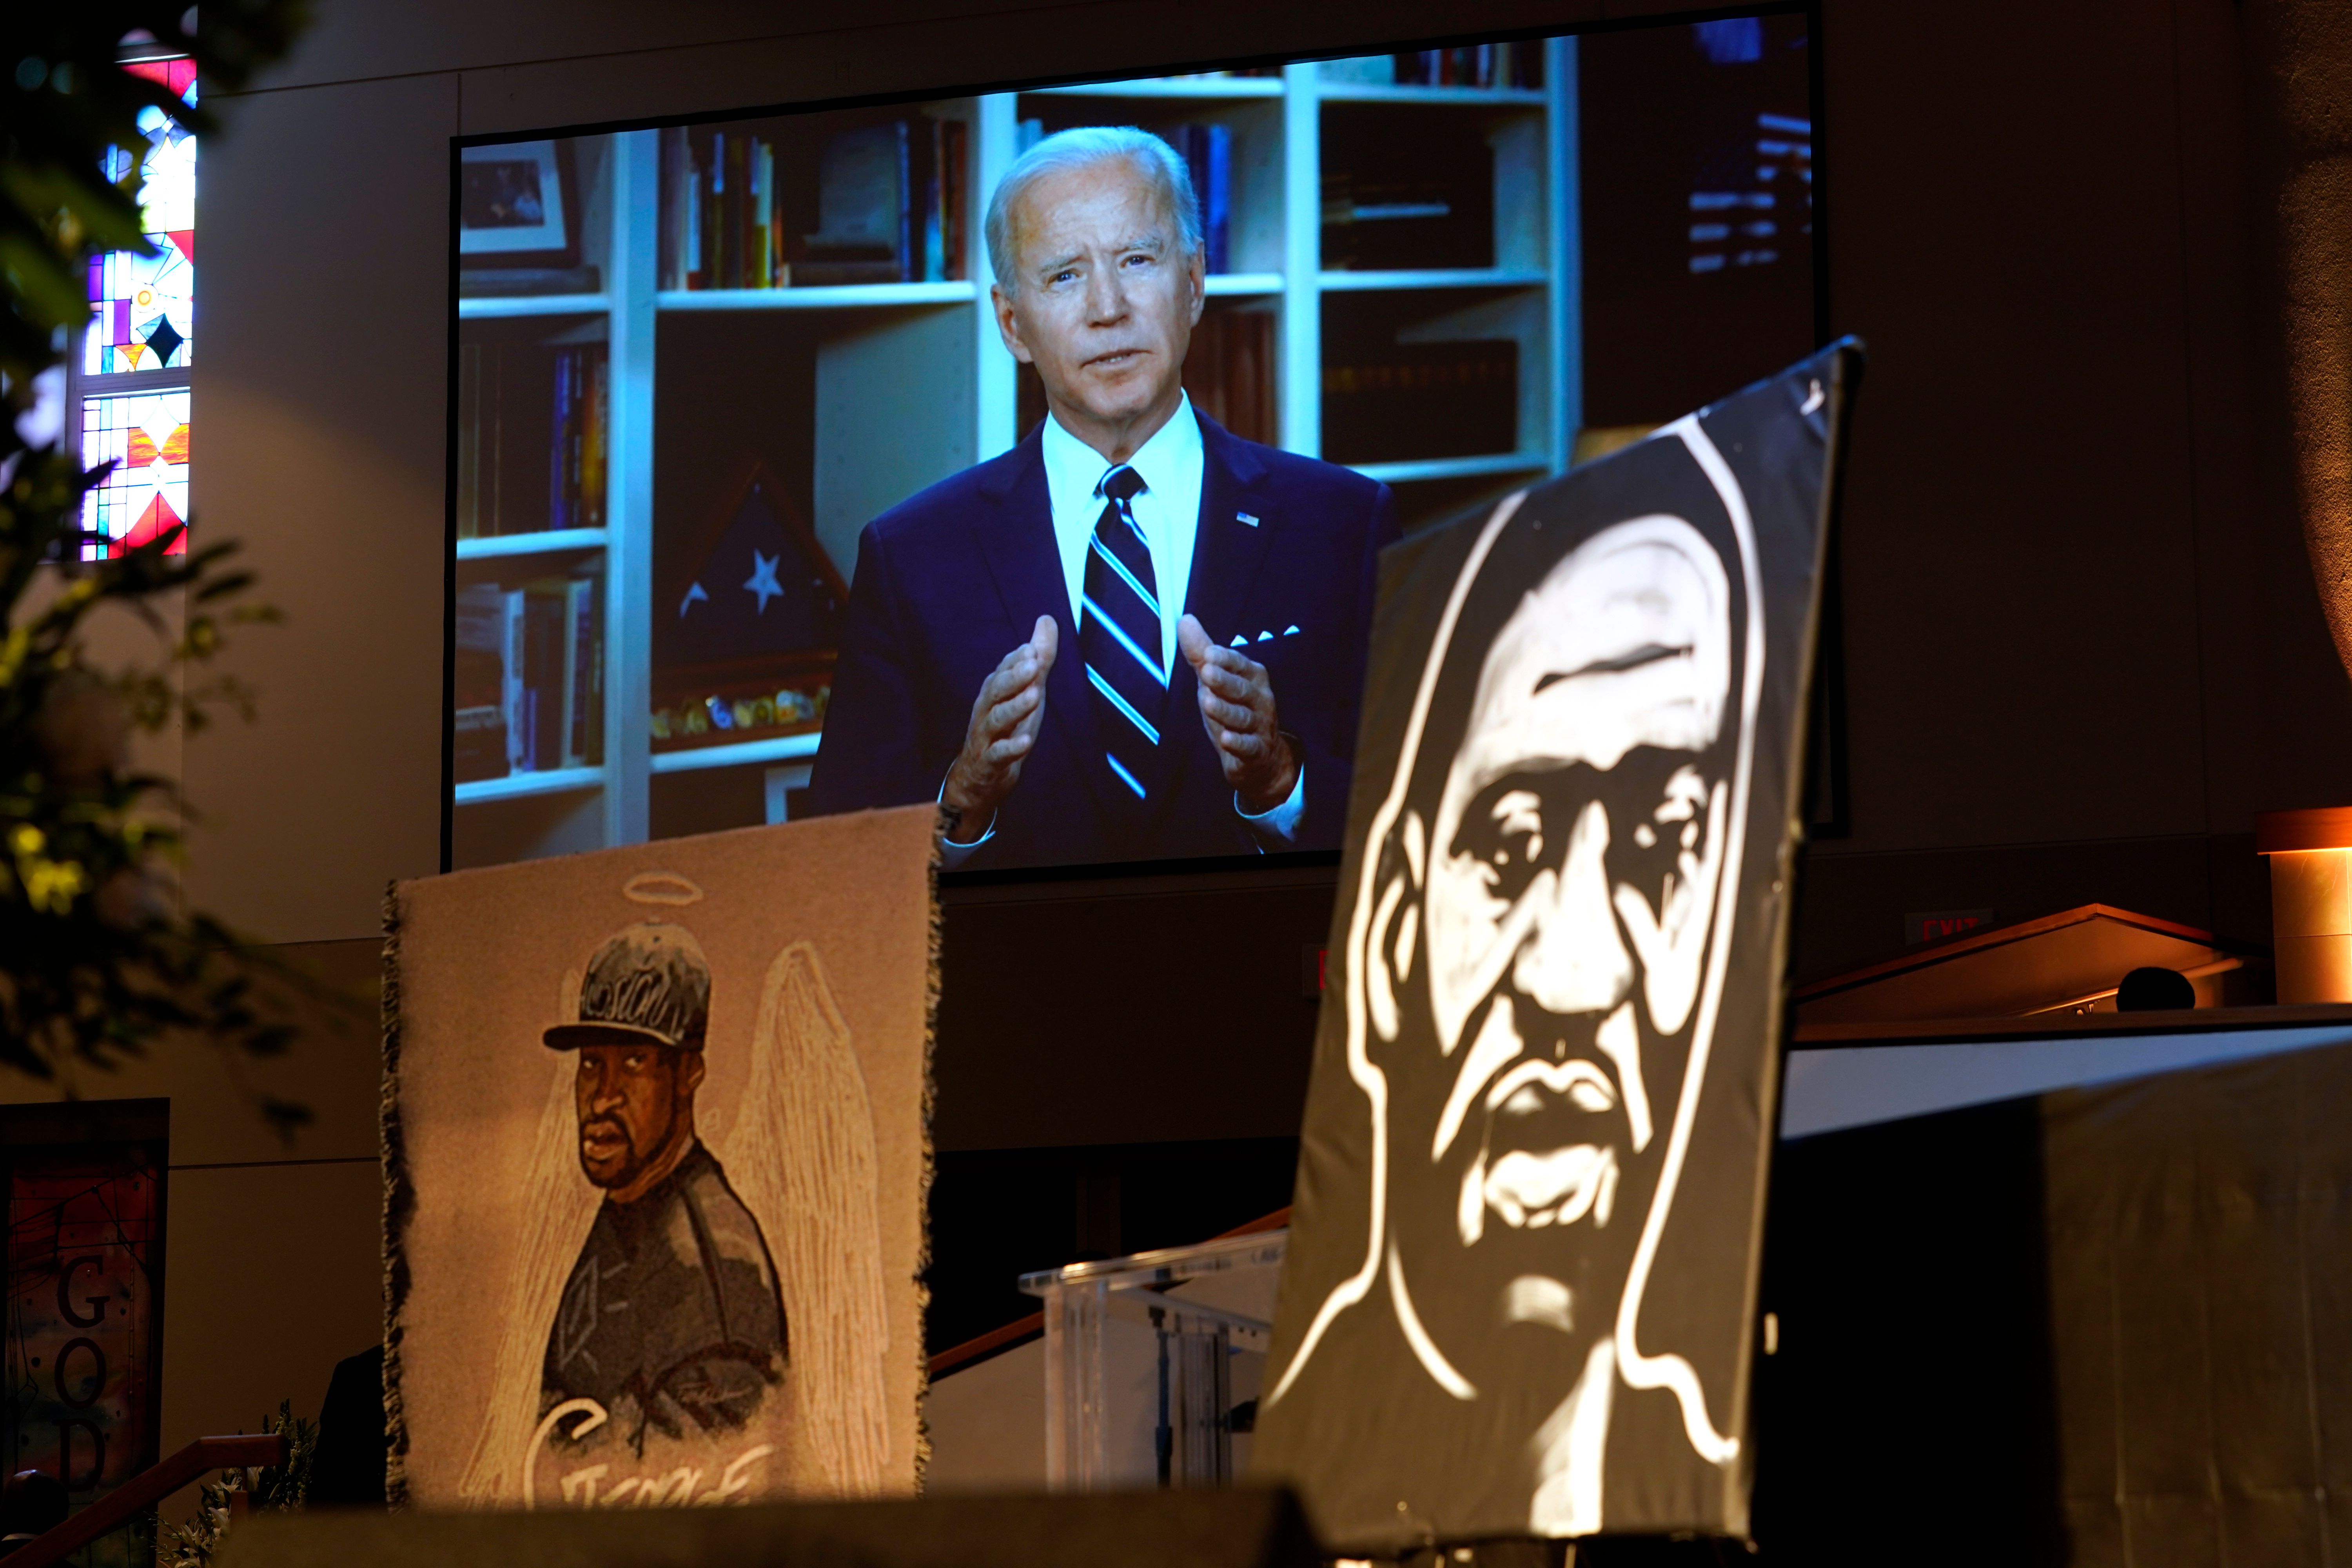 Democratic presumptive presidential candidate and former Vice President Joe Biden speaks via video link as family and guests attend the funeral service for George Floyd at The Fountain of Praise Church on June 9, 2020, in Houston. - George Floyd will be laid to rest Tuesday in his Houston hometown, the culmination of a long farewell to the 46-year-old African American whose death in custody ignited global protests against police brutality and racism.Thousands of well-wishers filed past Floyd's coffin in a public viewing a day earlier, as a court set bail at $1 million for the white officer charged with his murder last month in Minneapolis. (Photo by David J. Phillip / POOL / AFP) (Photo by DAVID J. PHILLIP/POOL/AFP via Getty Images)